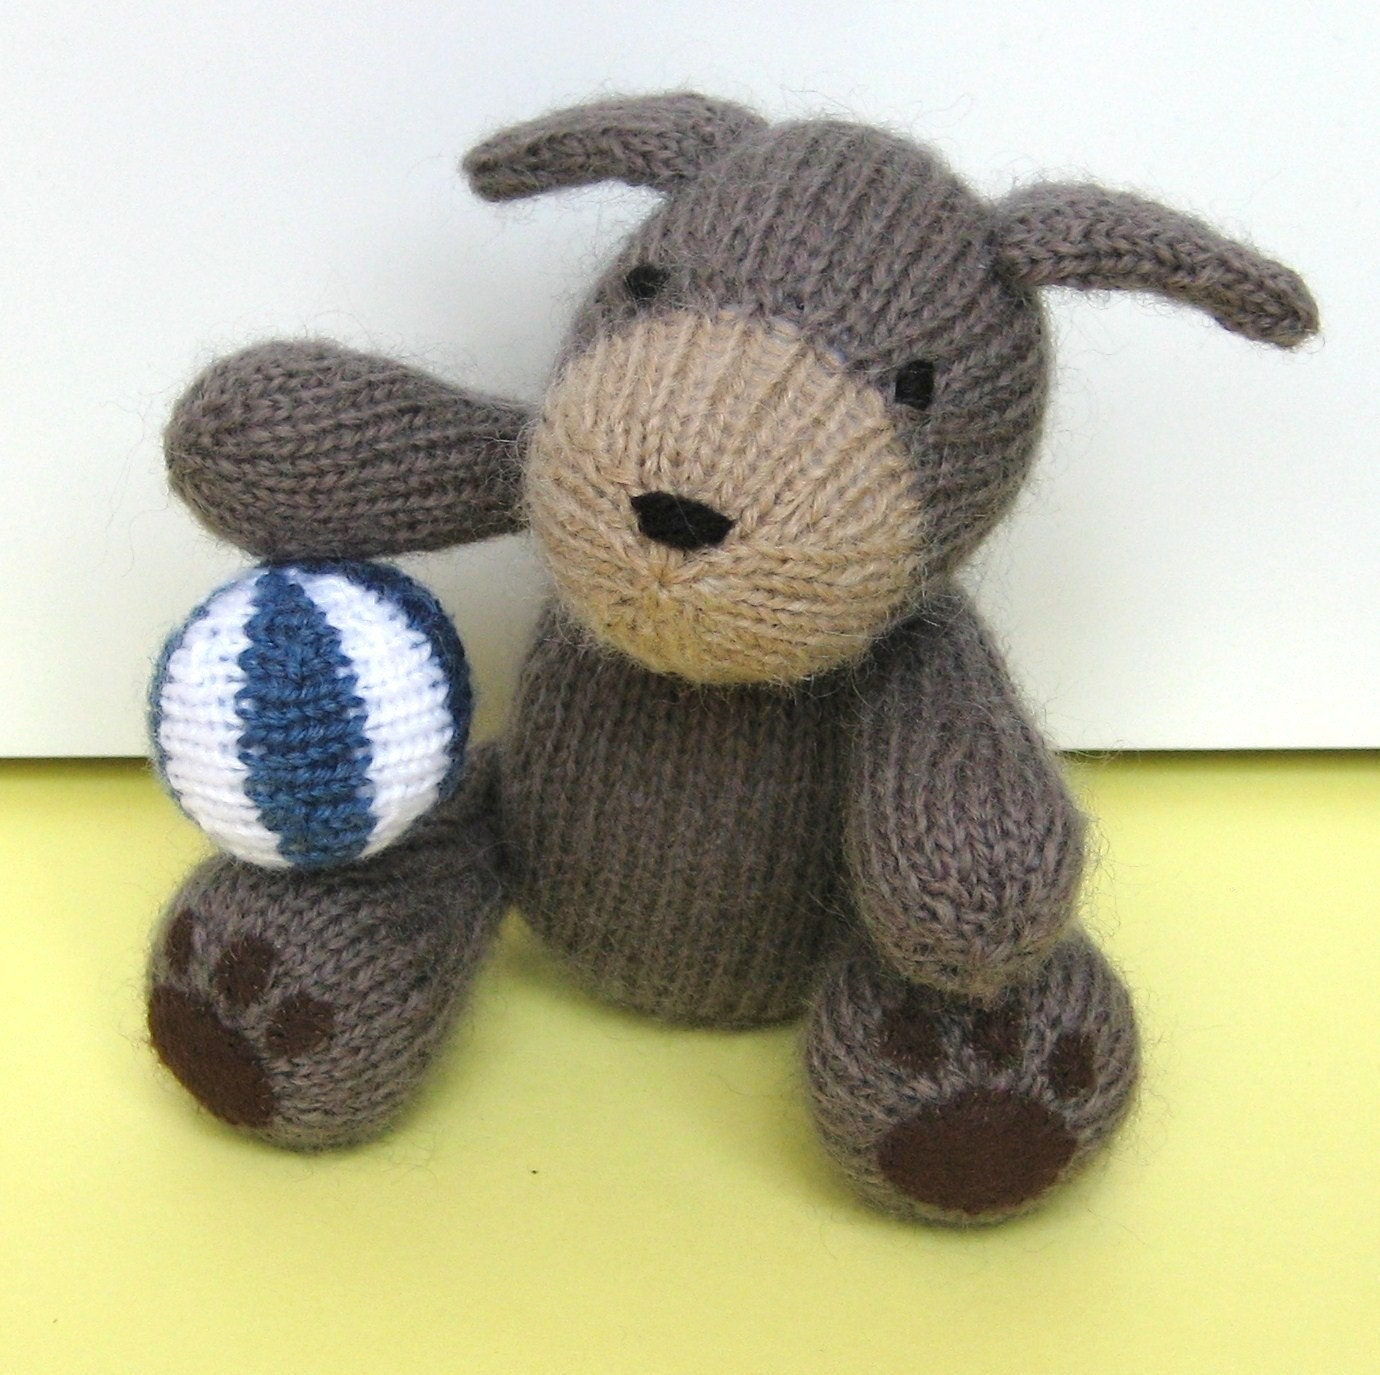 Knitting Patterns For Toy Dogs : KNITTING PATTERNS FOR TOY DOGS 1000 Free Patterns